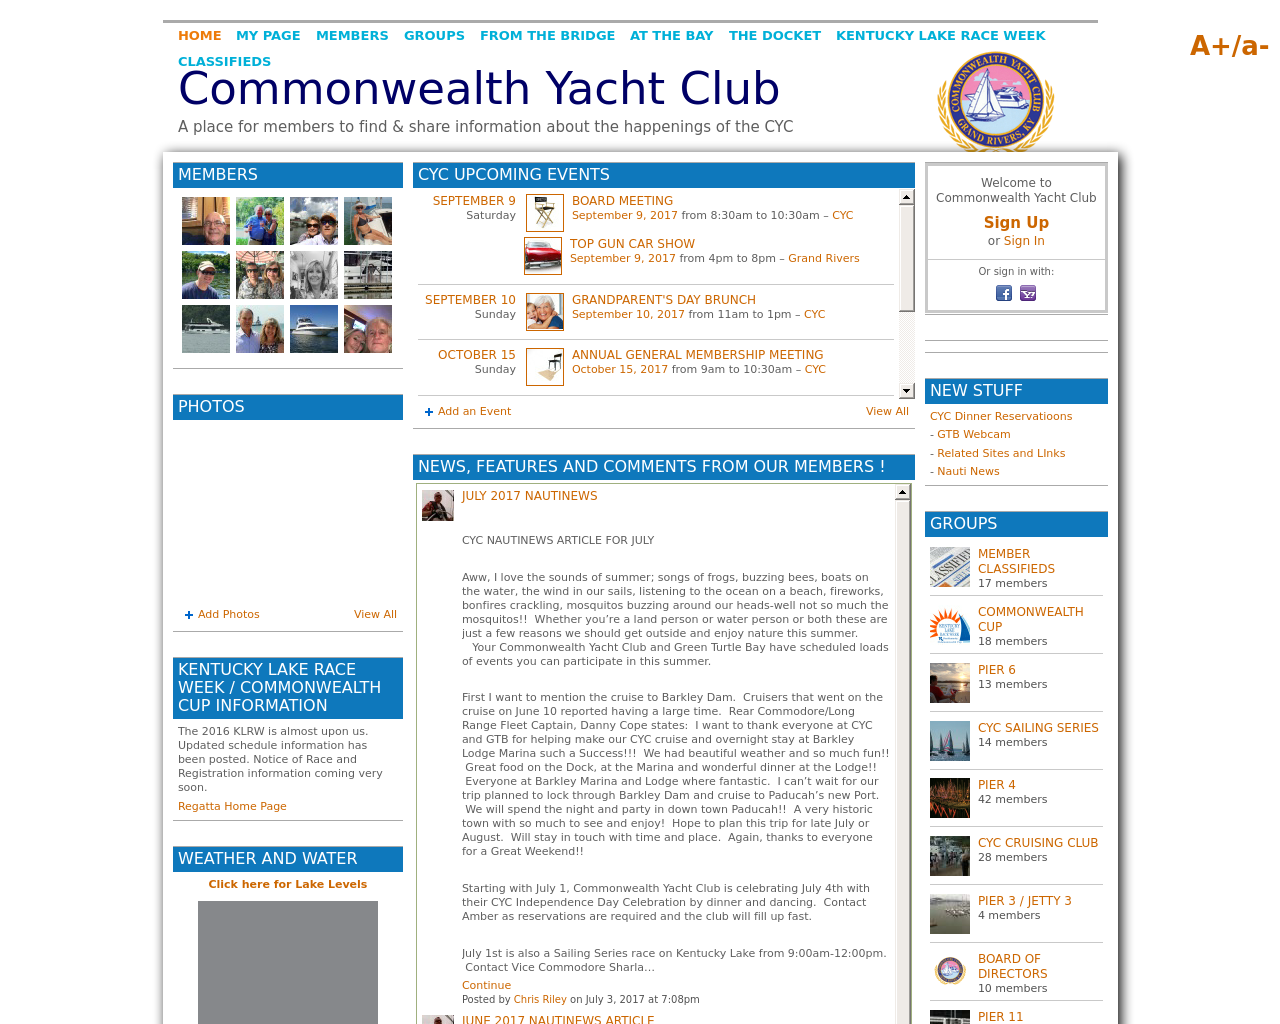 Commonwealth-Yacht-Club-Advertising-Reviews-Pricing